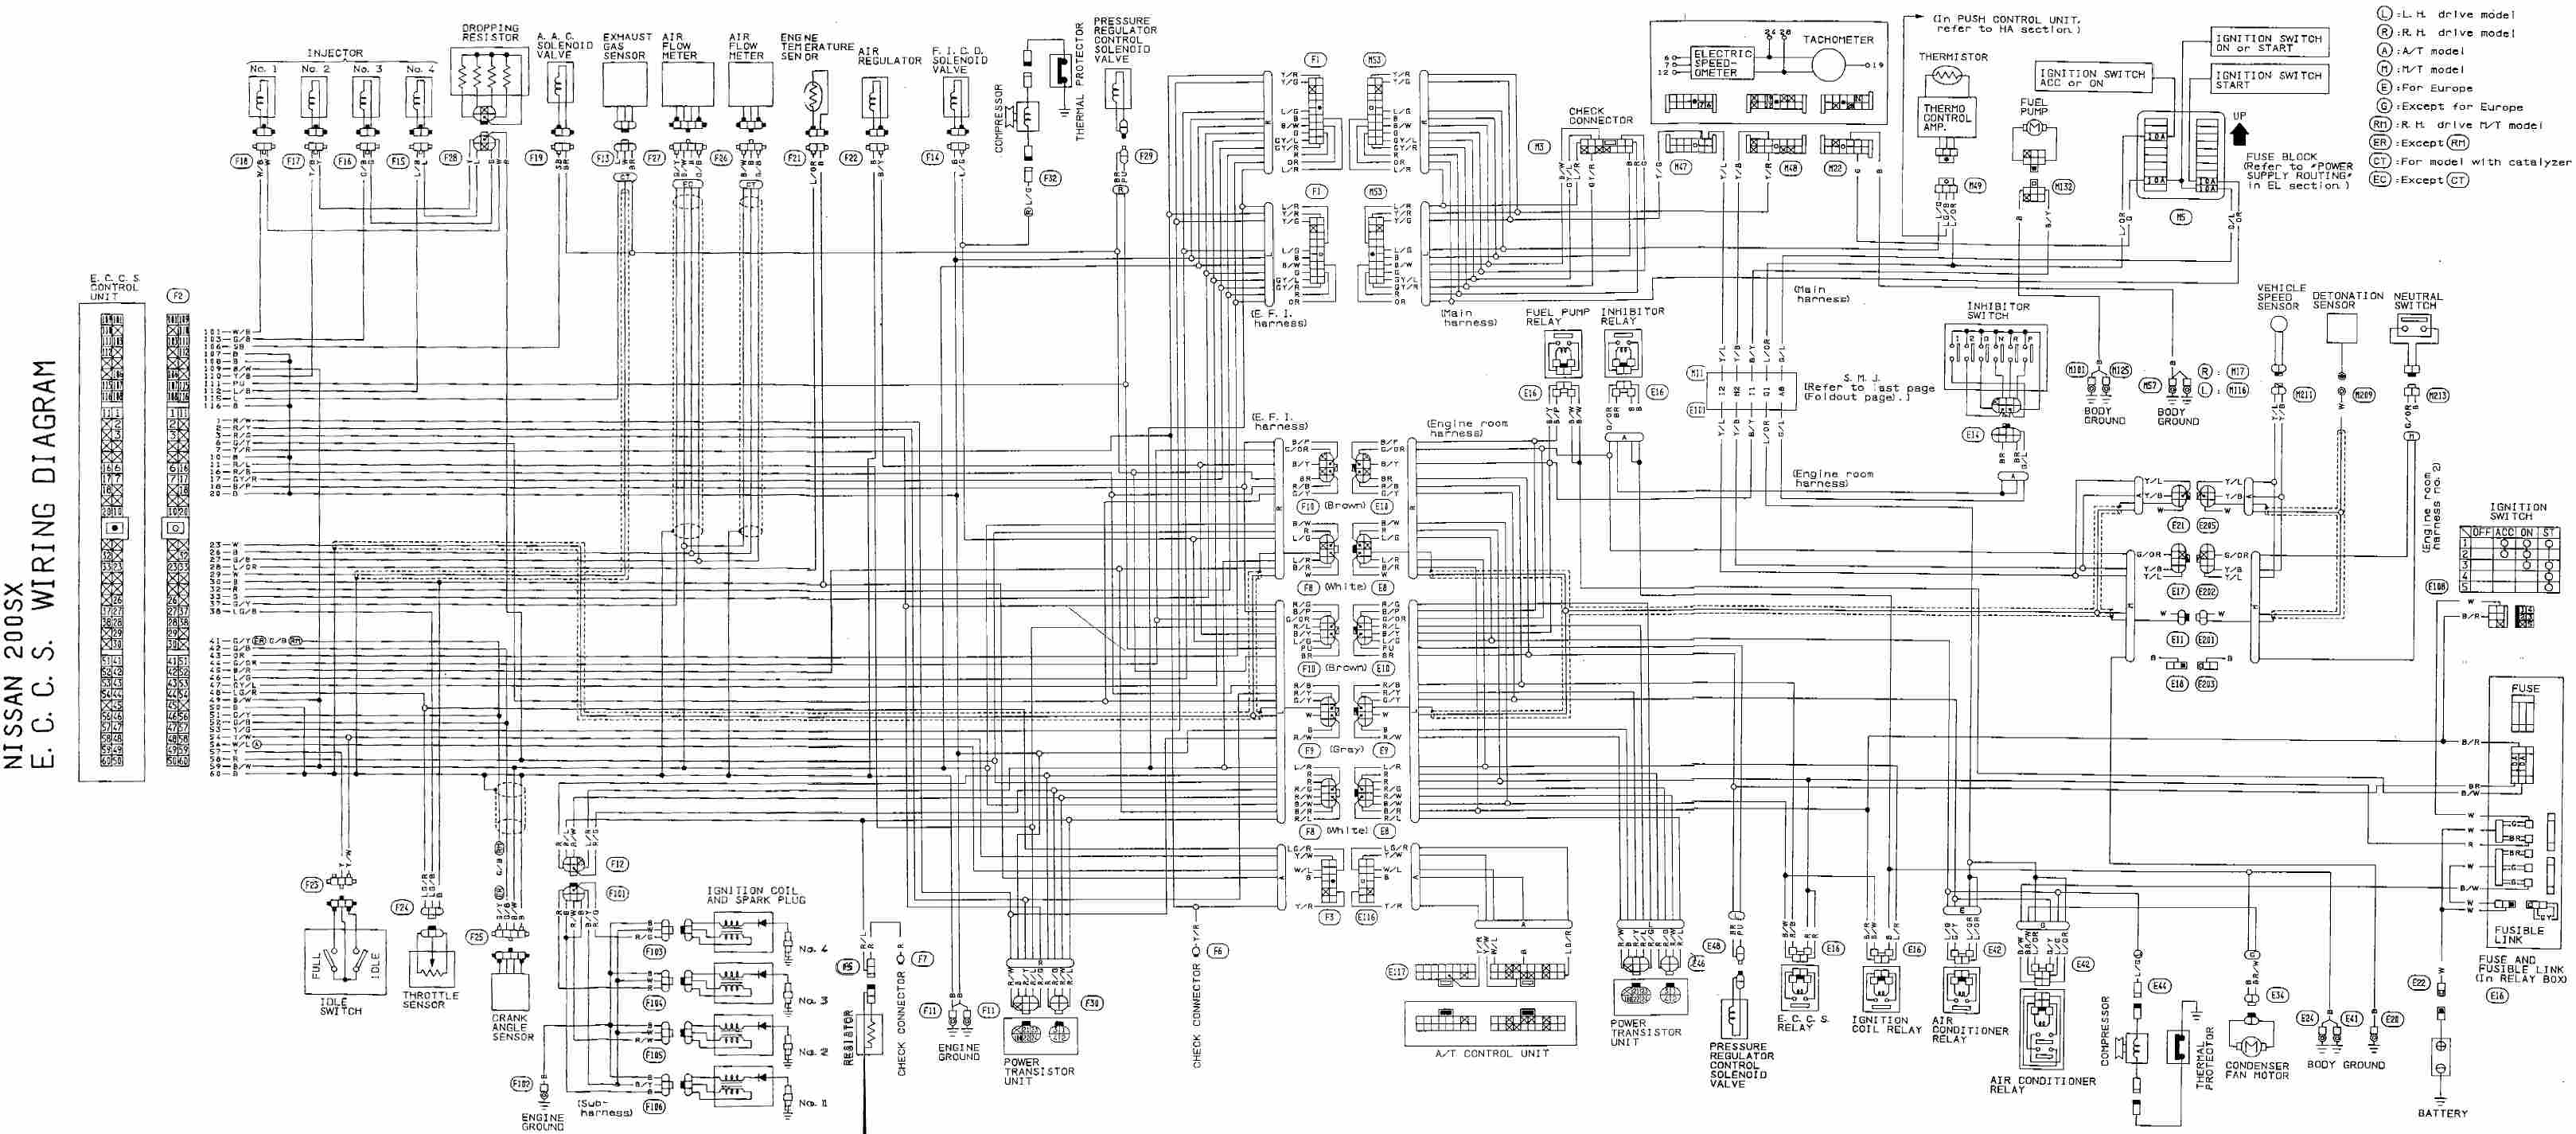 complete eccs wiring diagram of nissan 200x?t\=1508500919 300zx wiring diagram 300zx power diagram \u2022 wiring diagrams j 300zx starter wiring diagram at readyjetset.co